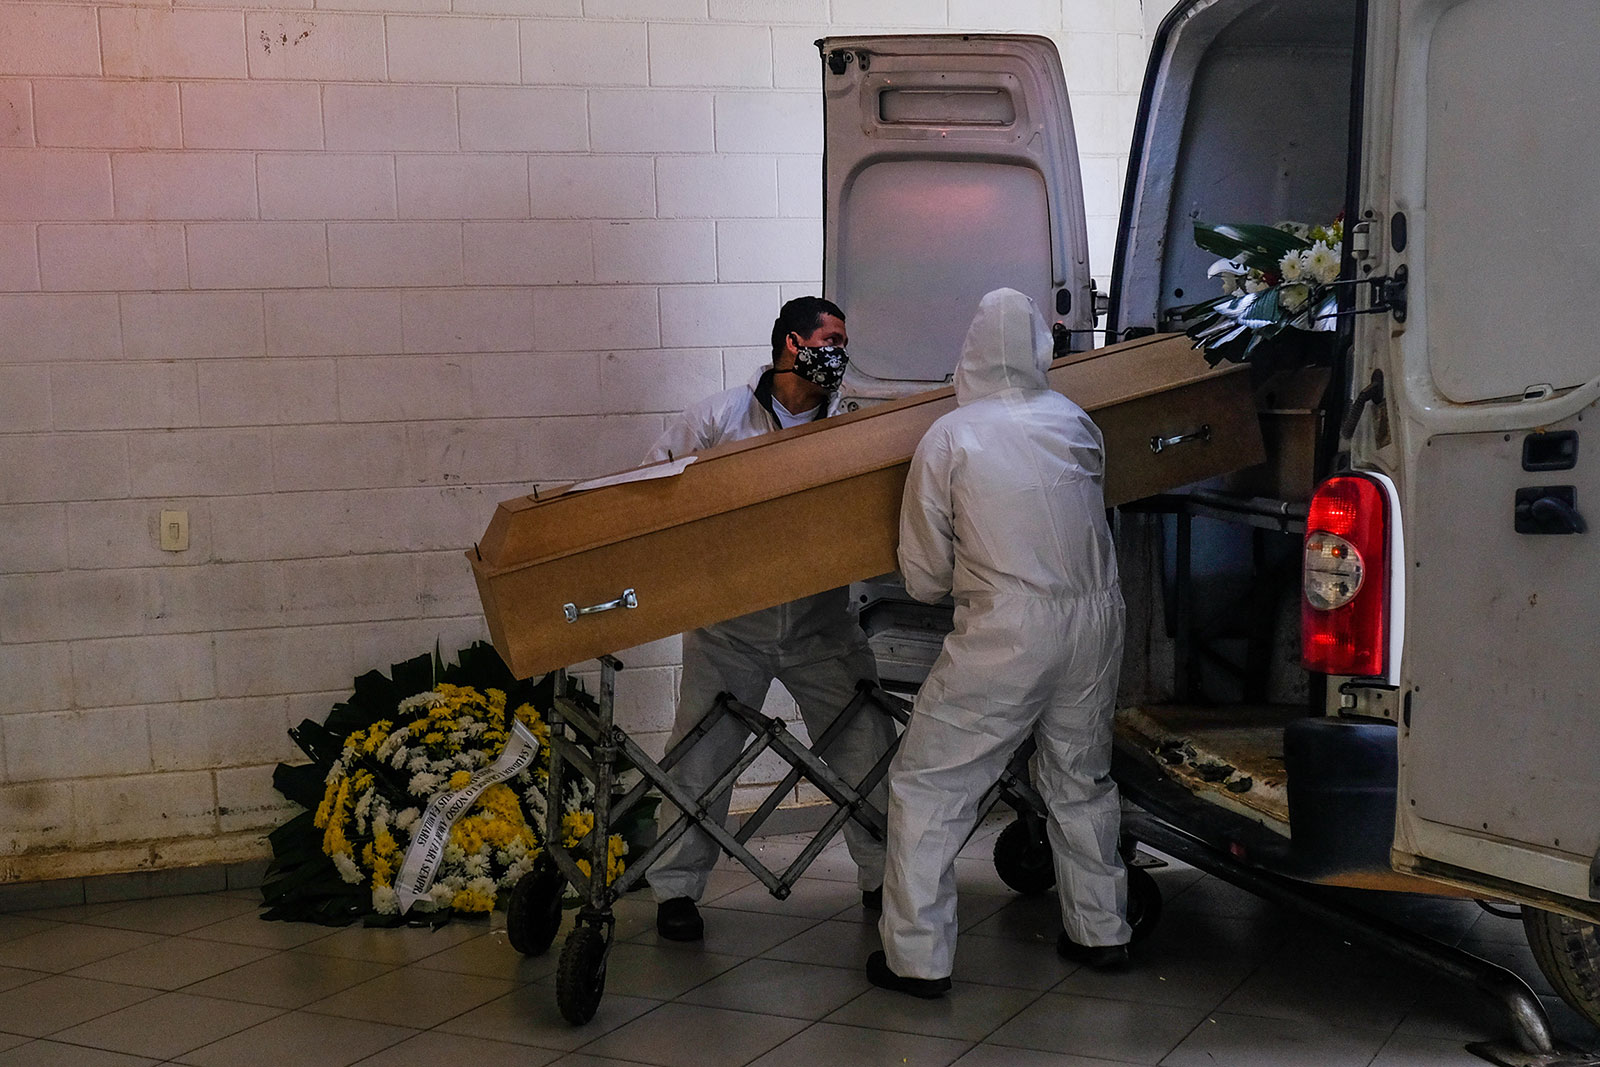 Employees at the Vila Formosa cemetery unload a coffin from a van in San Paulo, Brazil, on May 23.